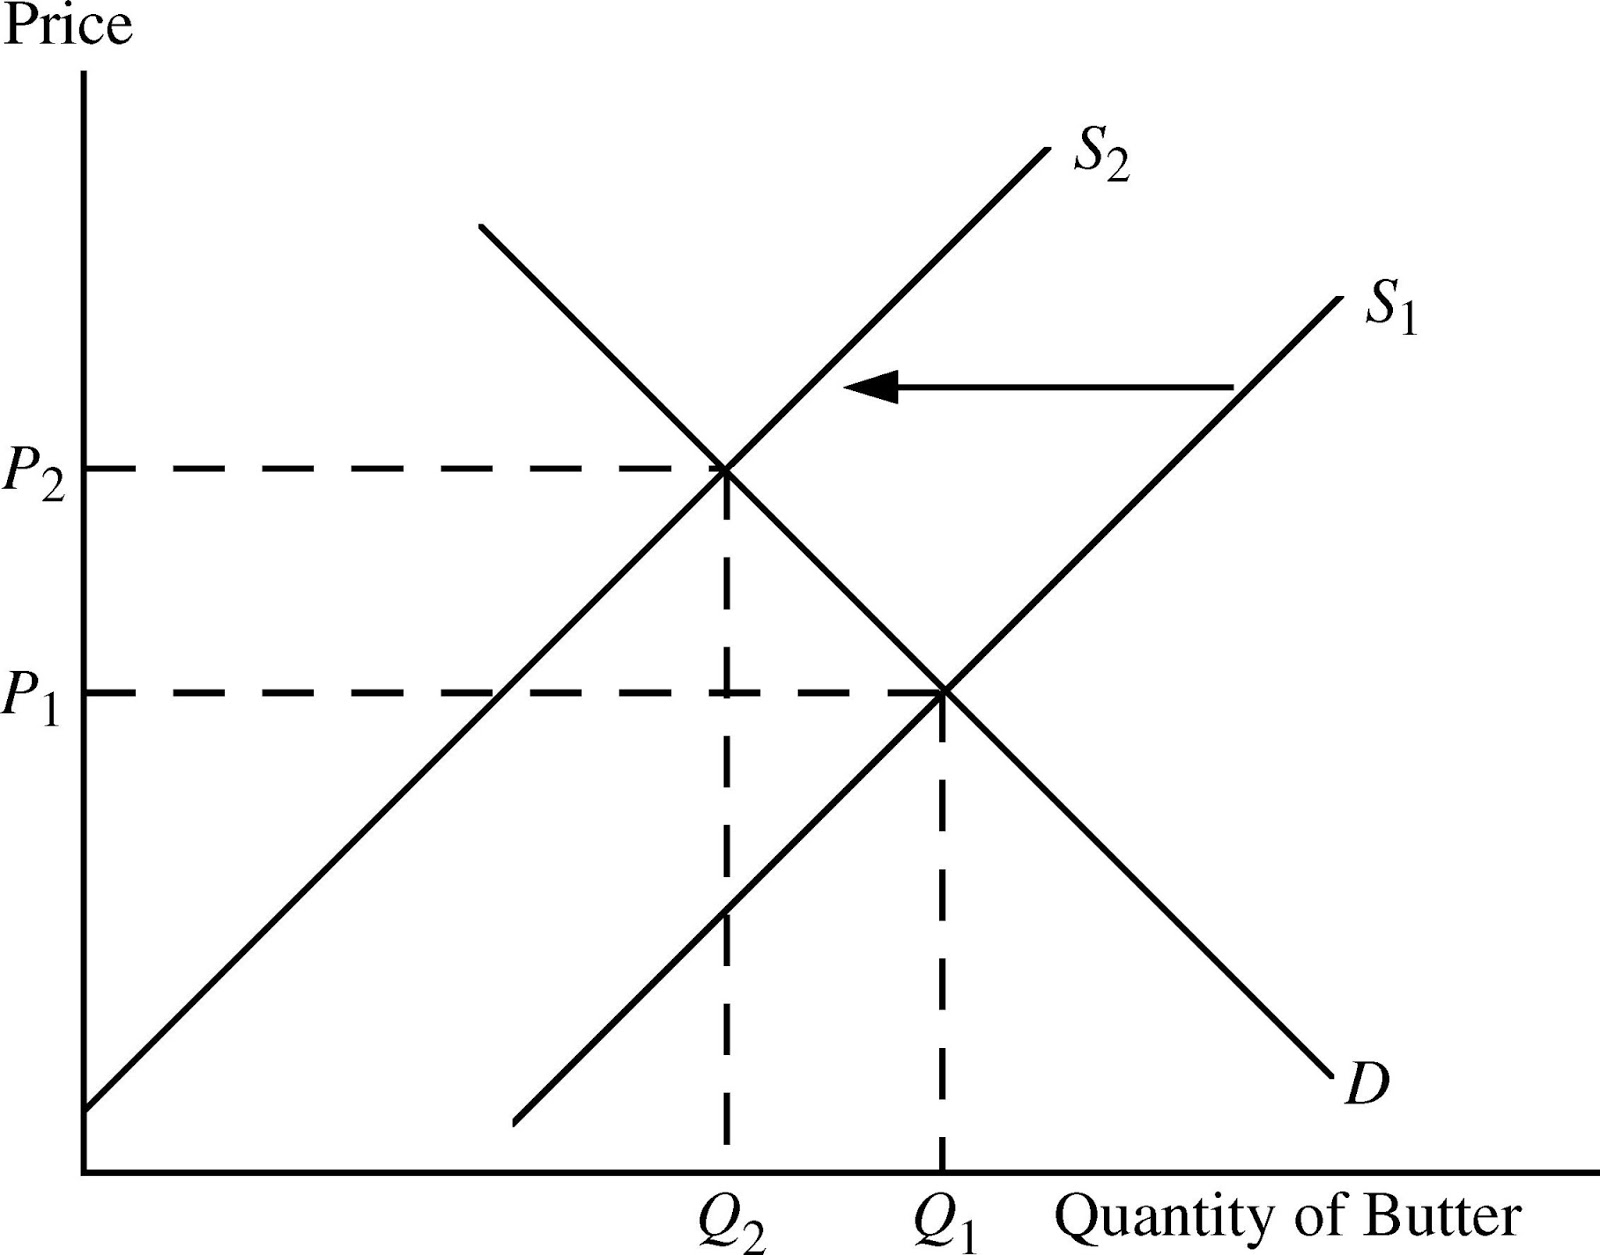 supply demand curves worksheet week 1 Section 1: demand supply and demand in a market interact to determine  1  price per video game quantity individual demand curve 0 5 10 20 30 40  $50  contributed 8 hours per week in pediatrics honors.